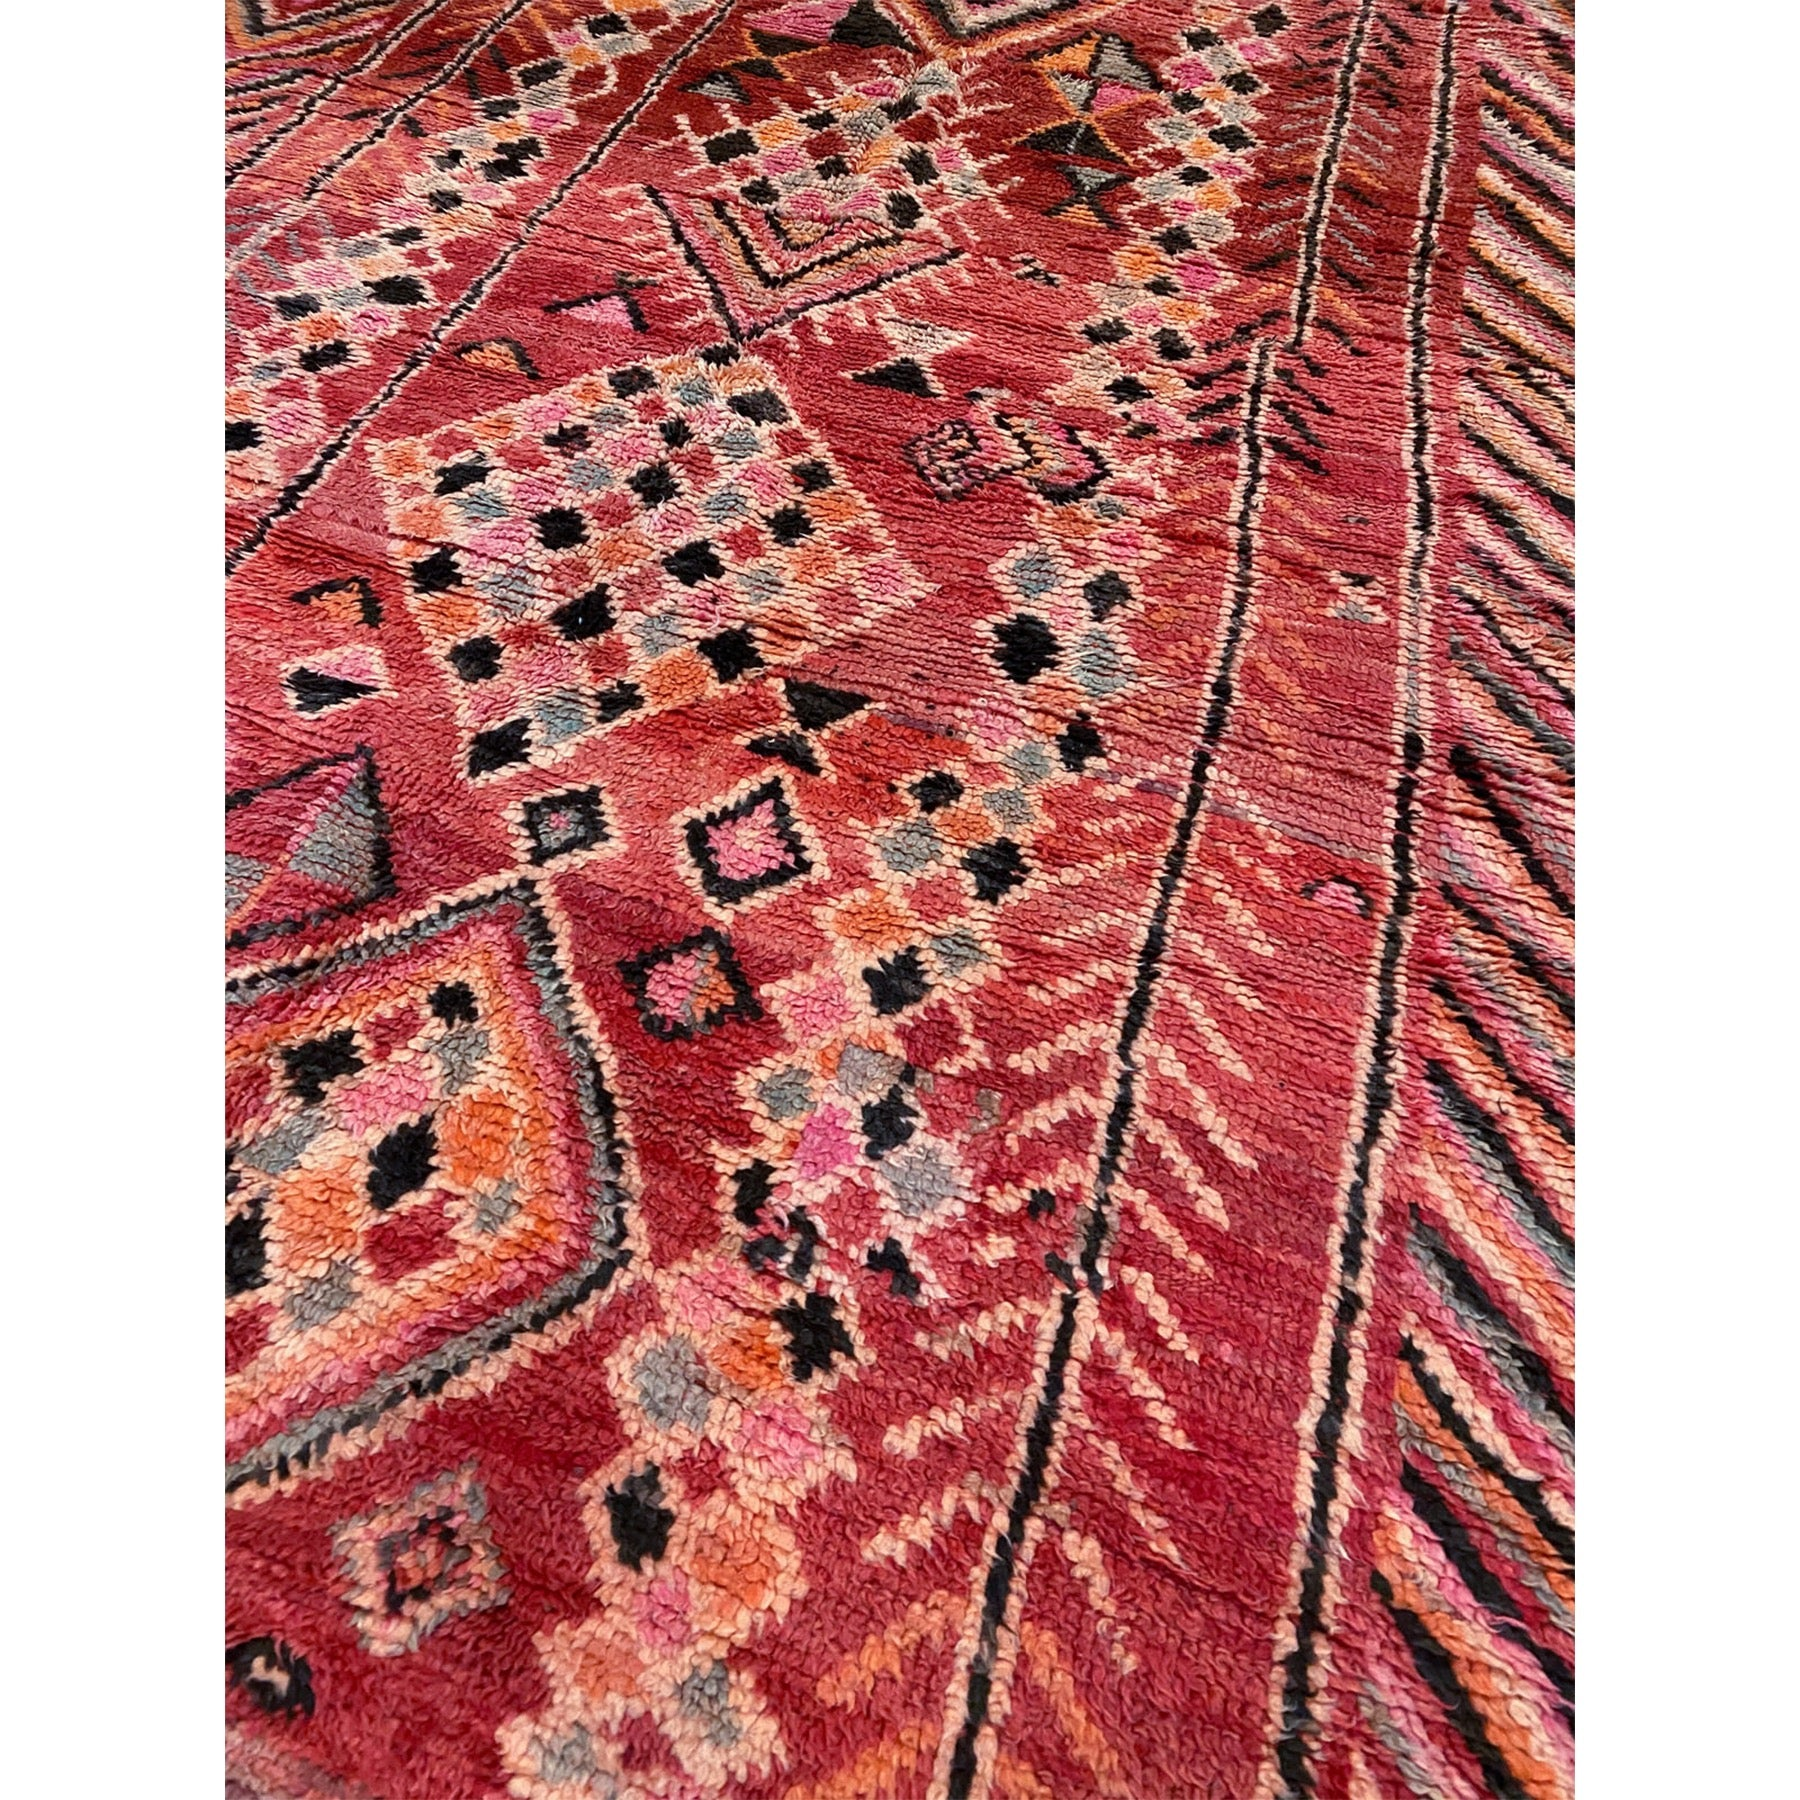 Colorful contemporary Moroccan berber carpet - Kantara | Moroccan Rugs